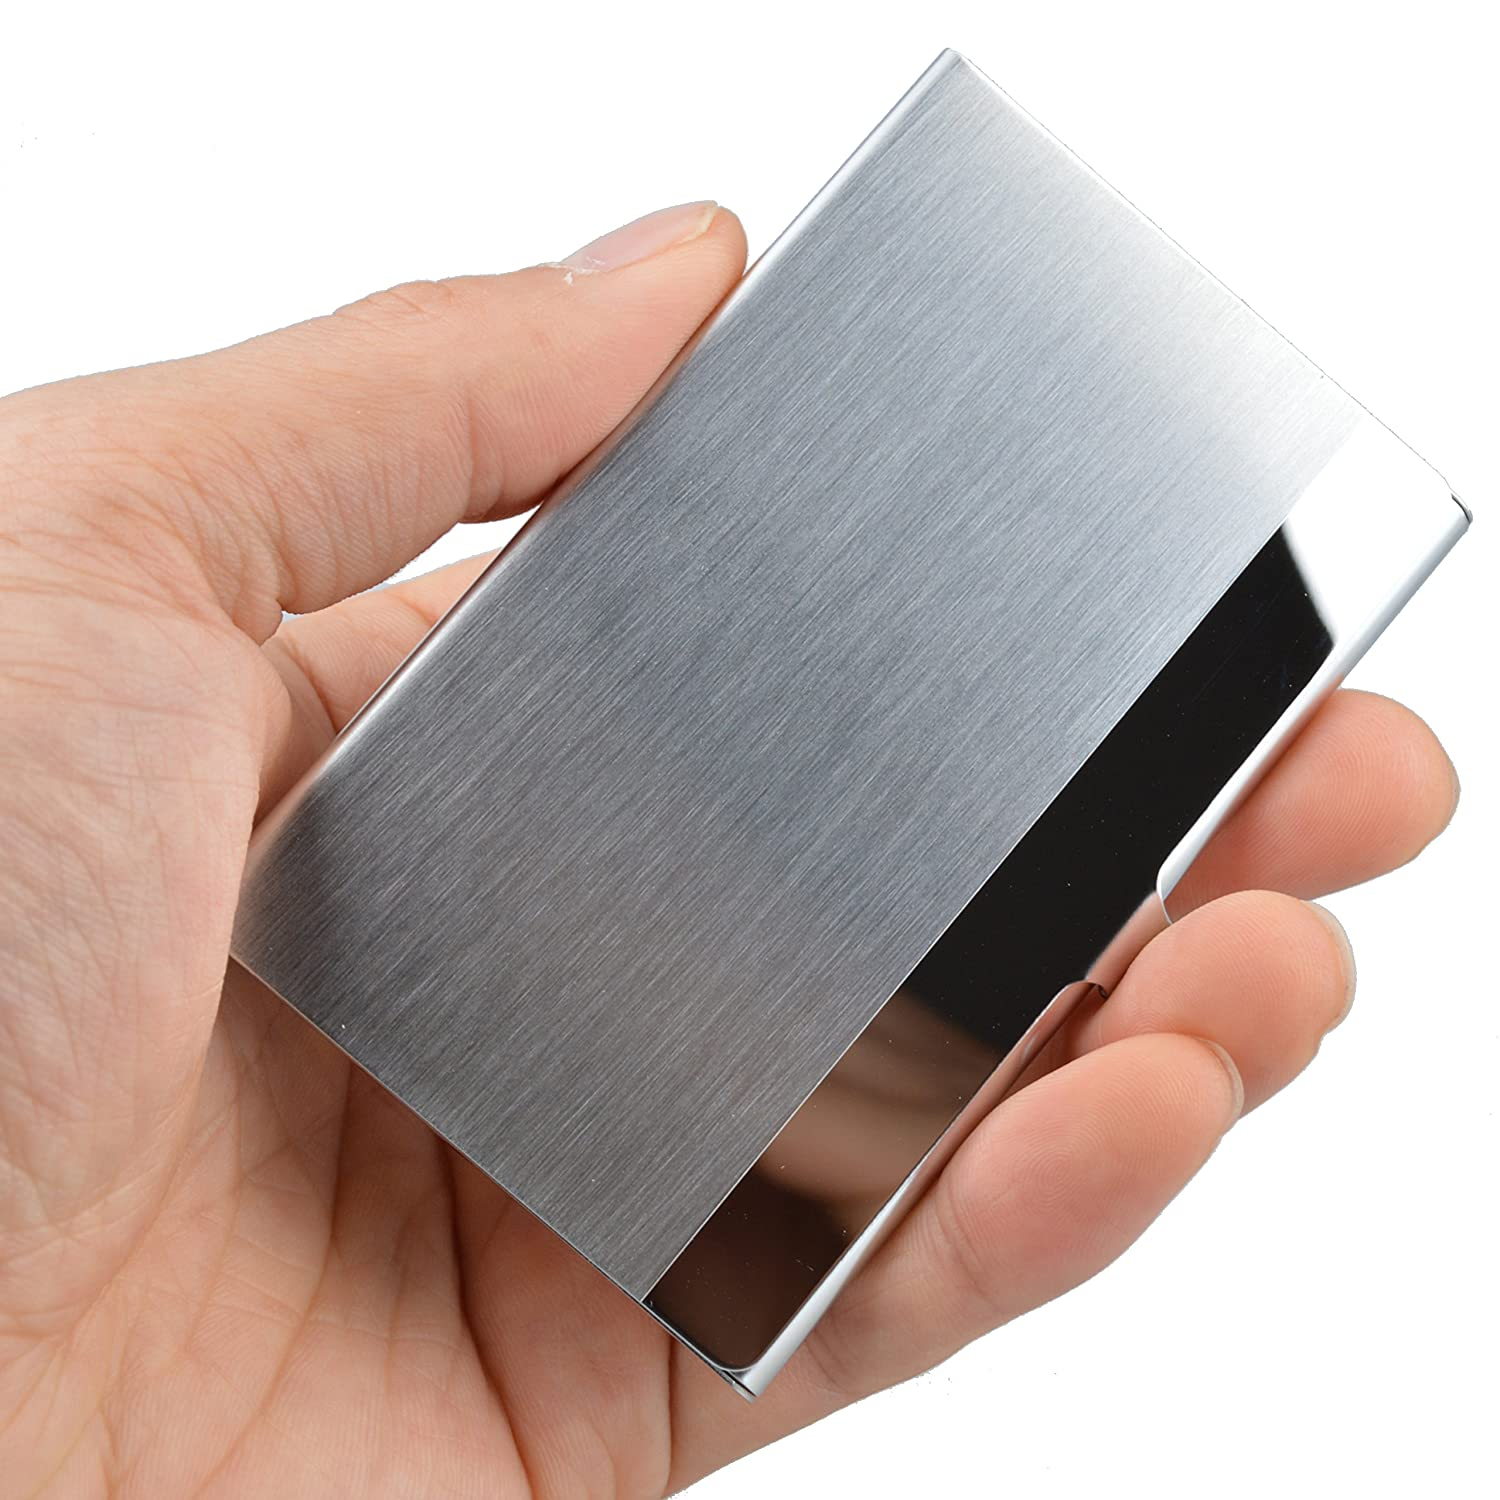 Maxgear Professional Business Card Holder Case Stainless